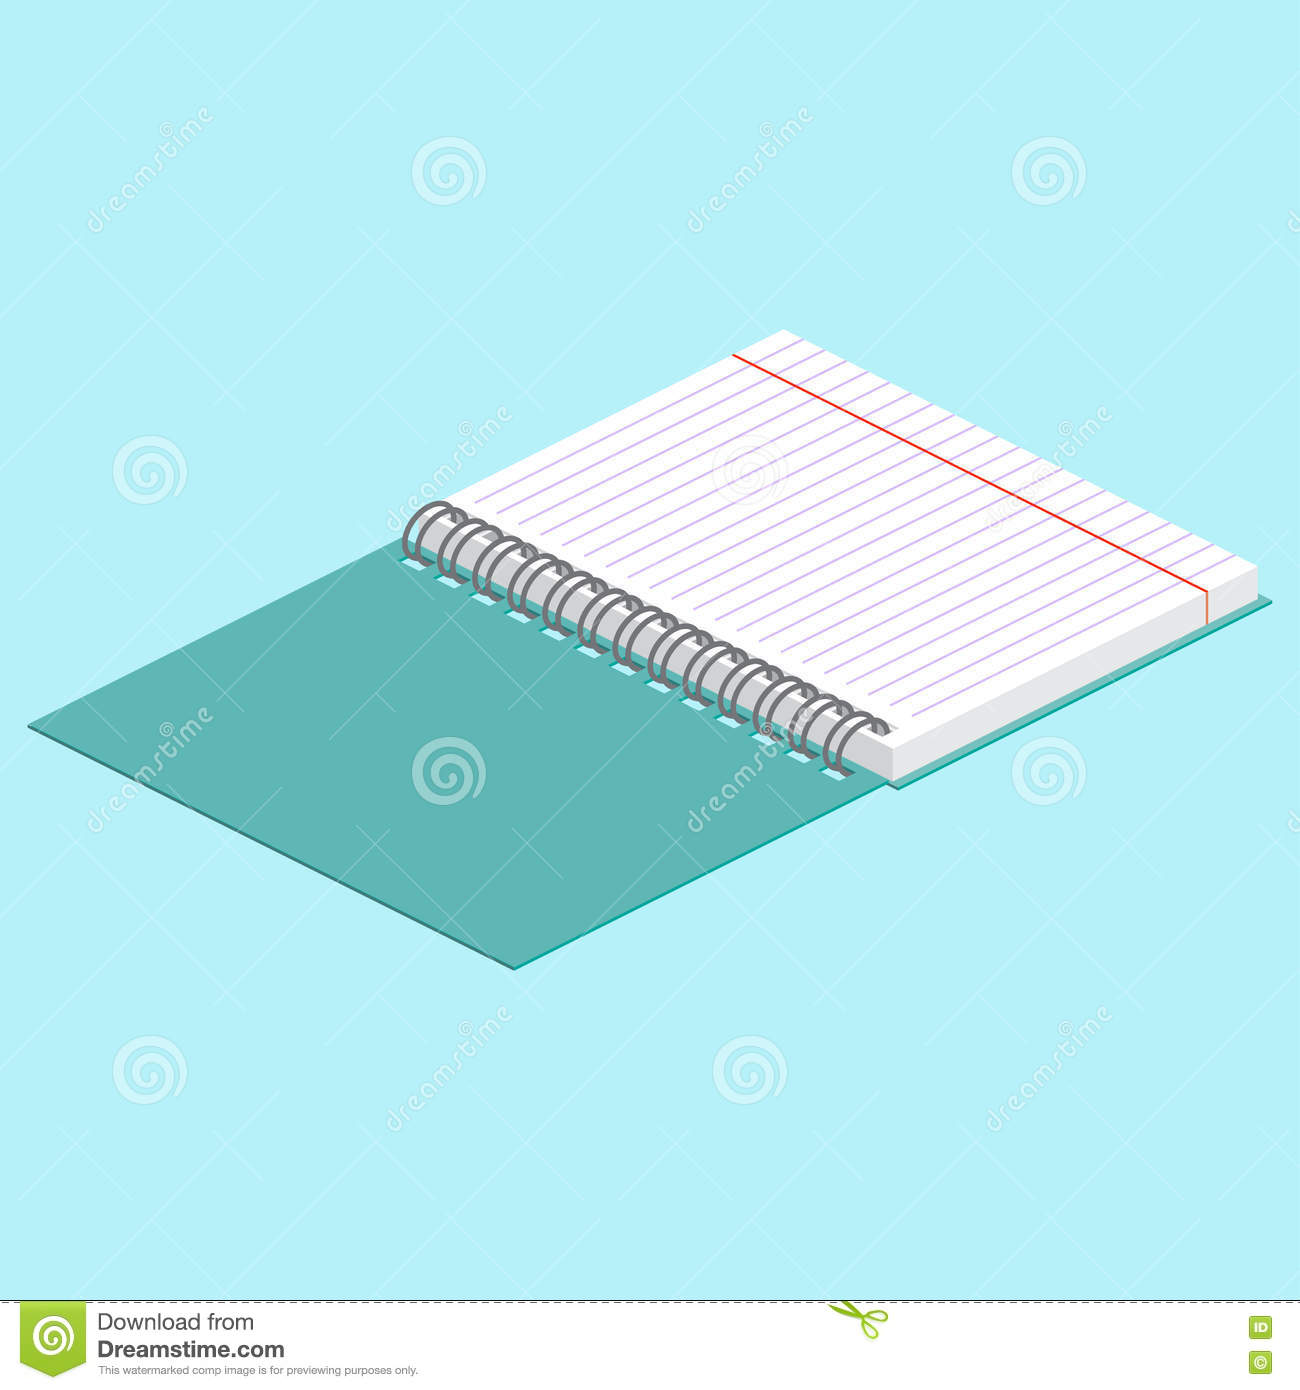 Isometric illustration on a blue background with the image of open spiral notebook. Vector illustration.